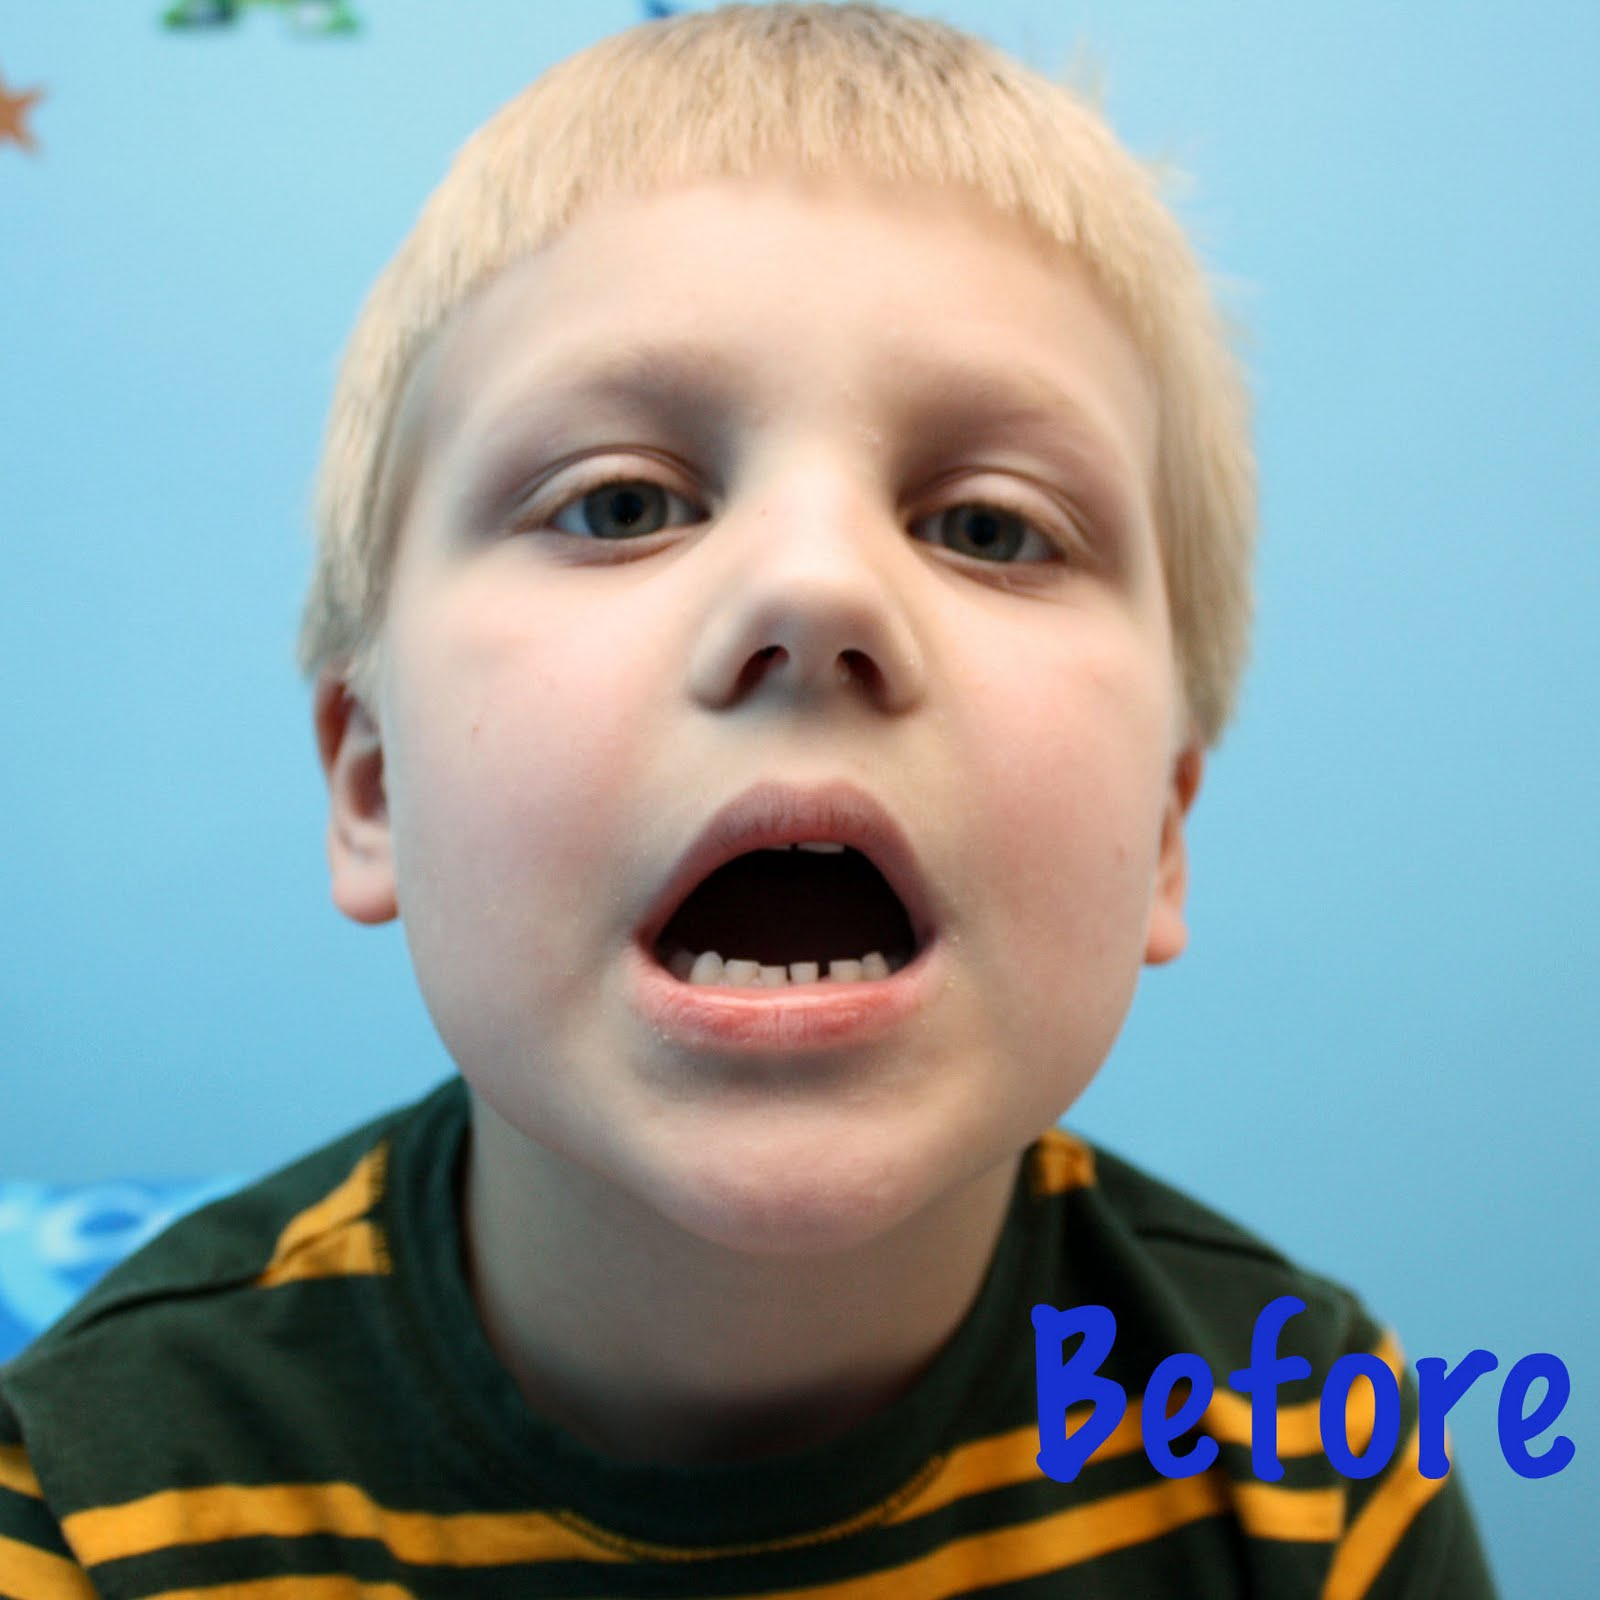 Wyatts First Lost Tooth